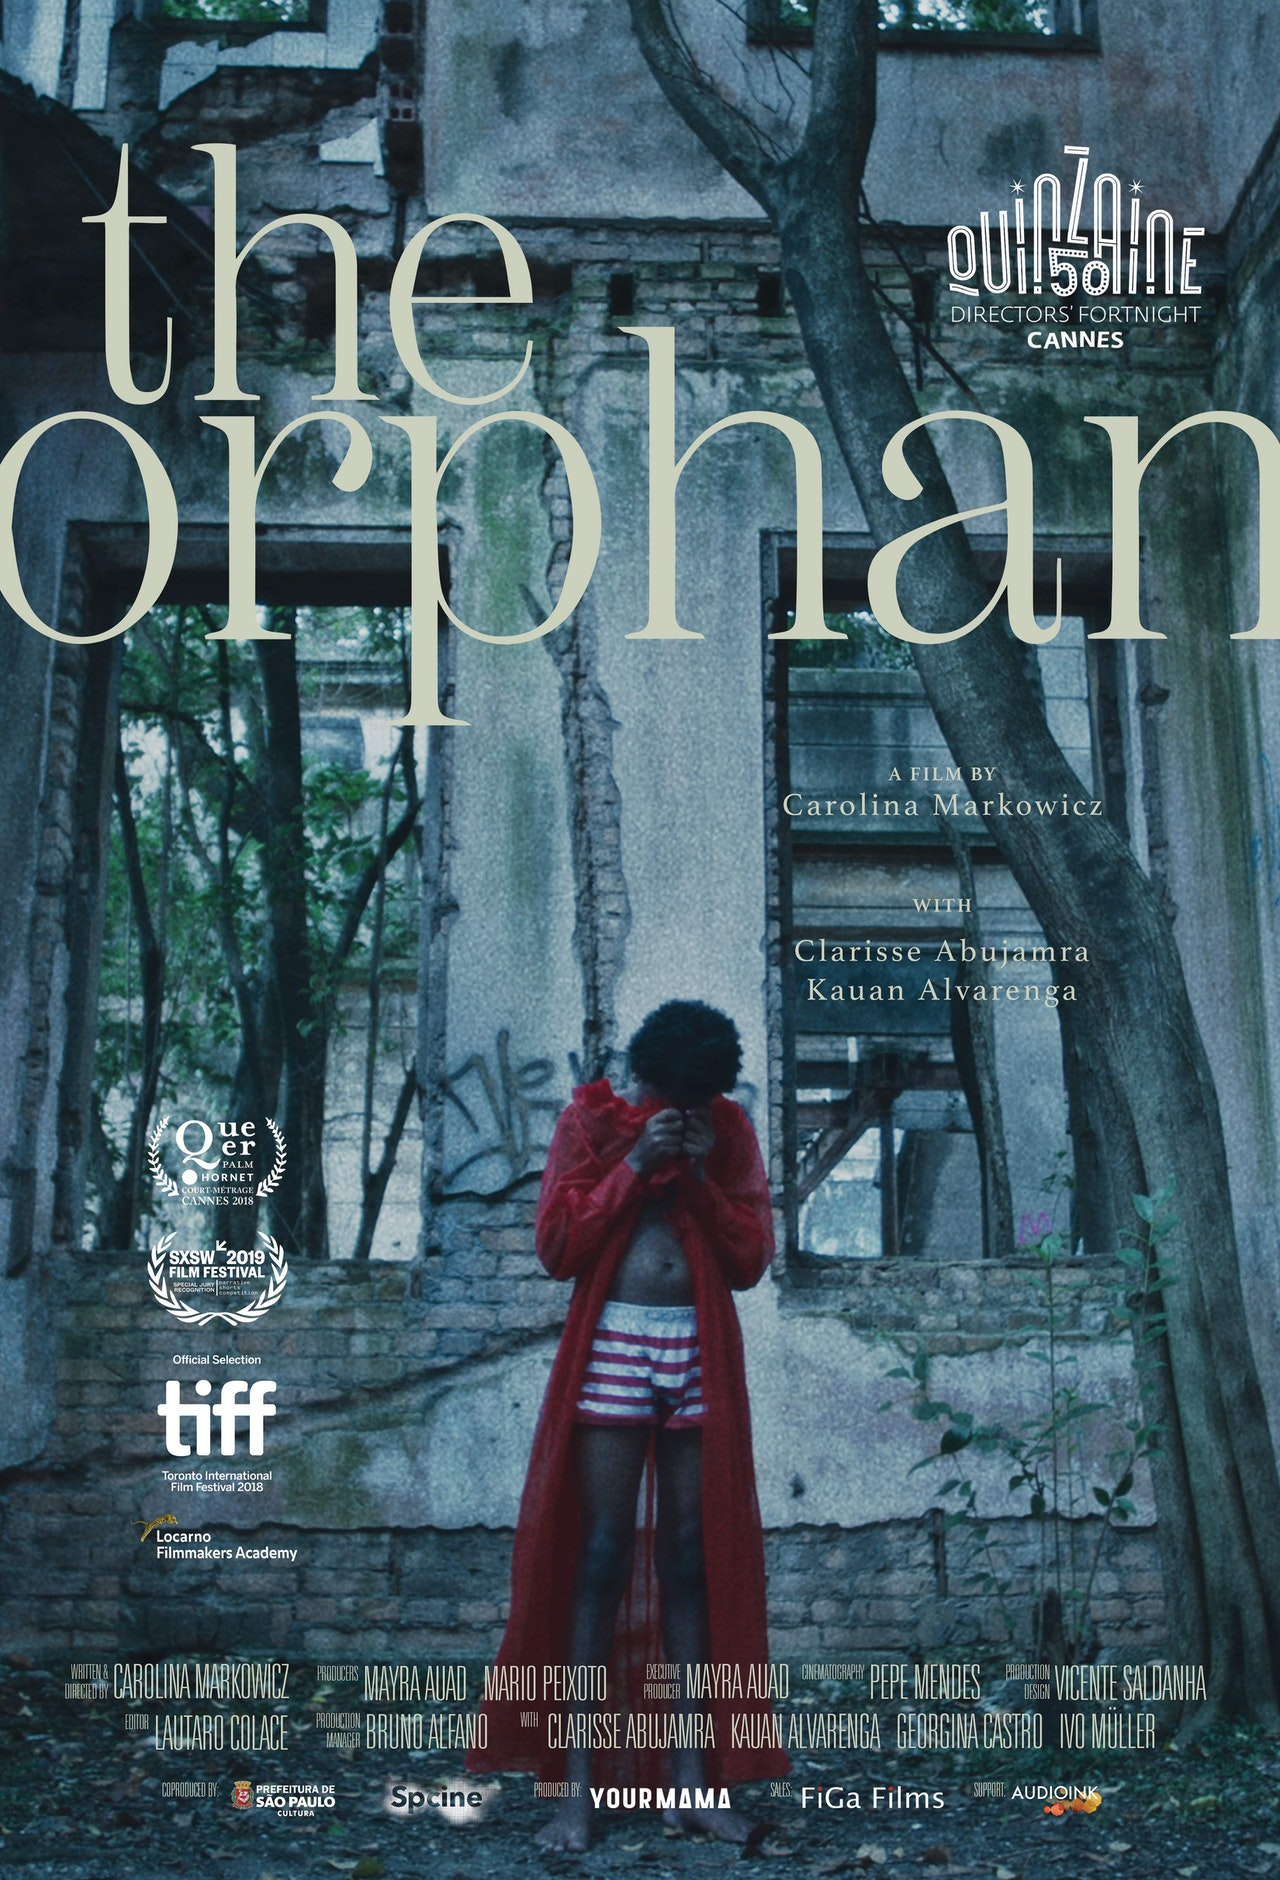 Special Jury Recognition for 'The Orphan' at SXSW.